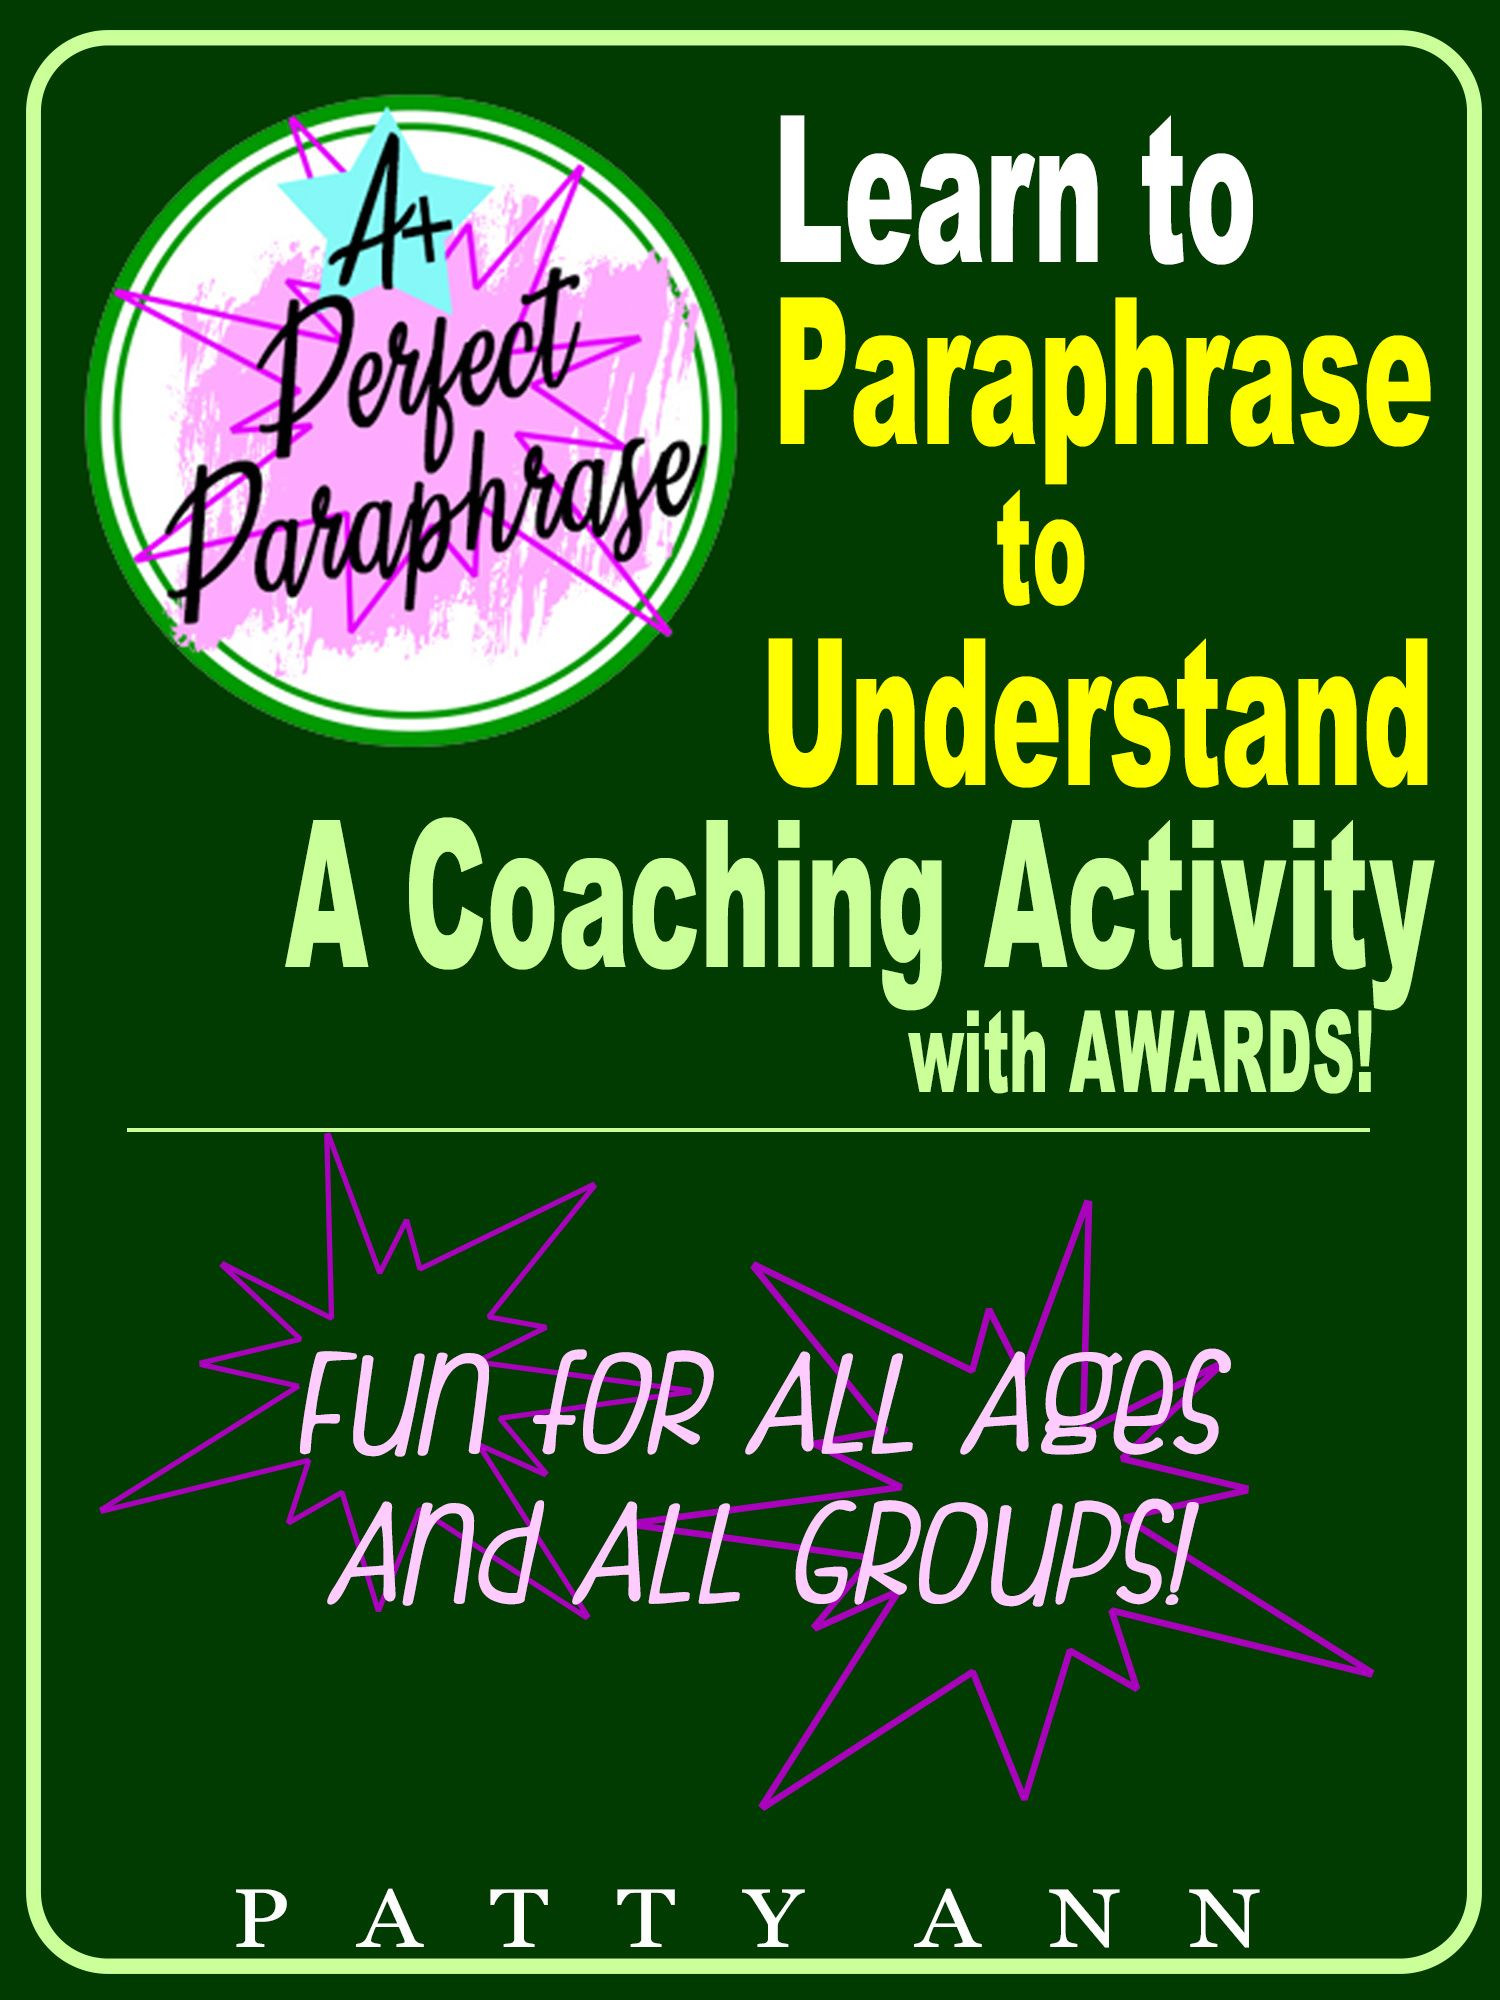 Paraphrase 2 Understand Patty Ann In 2020 Teaching Technique Learned Behavior Communication Skills Paraphrasing Oral